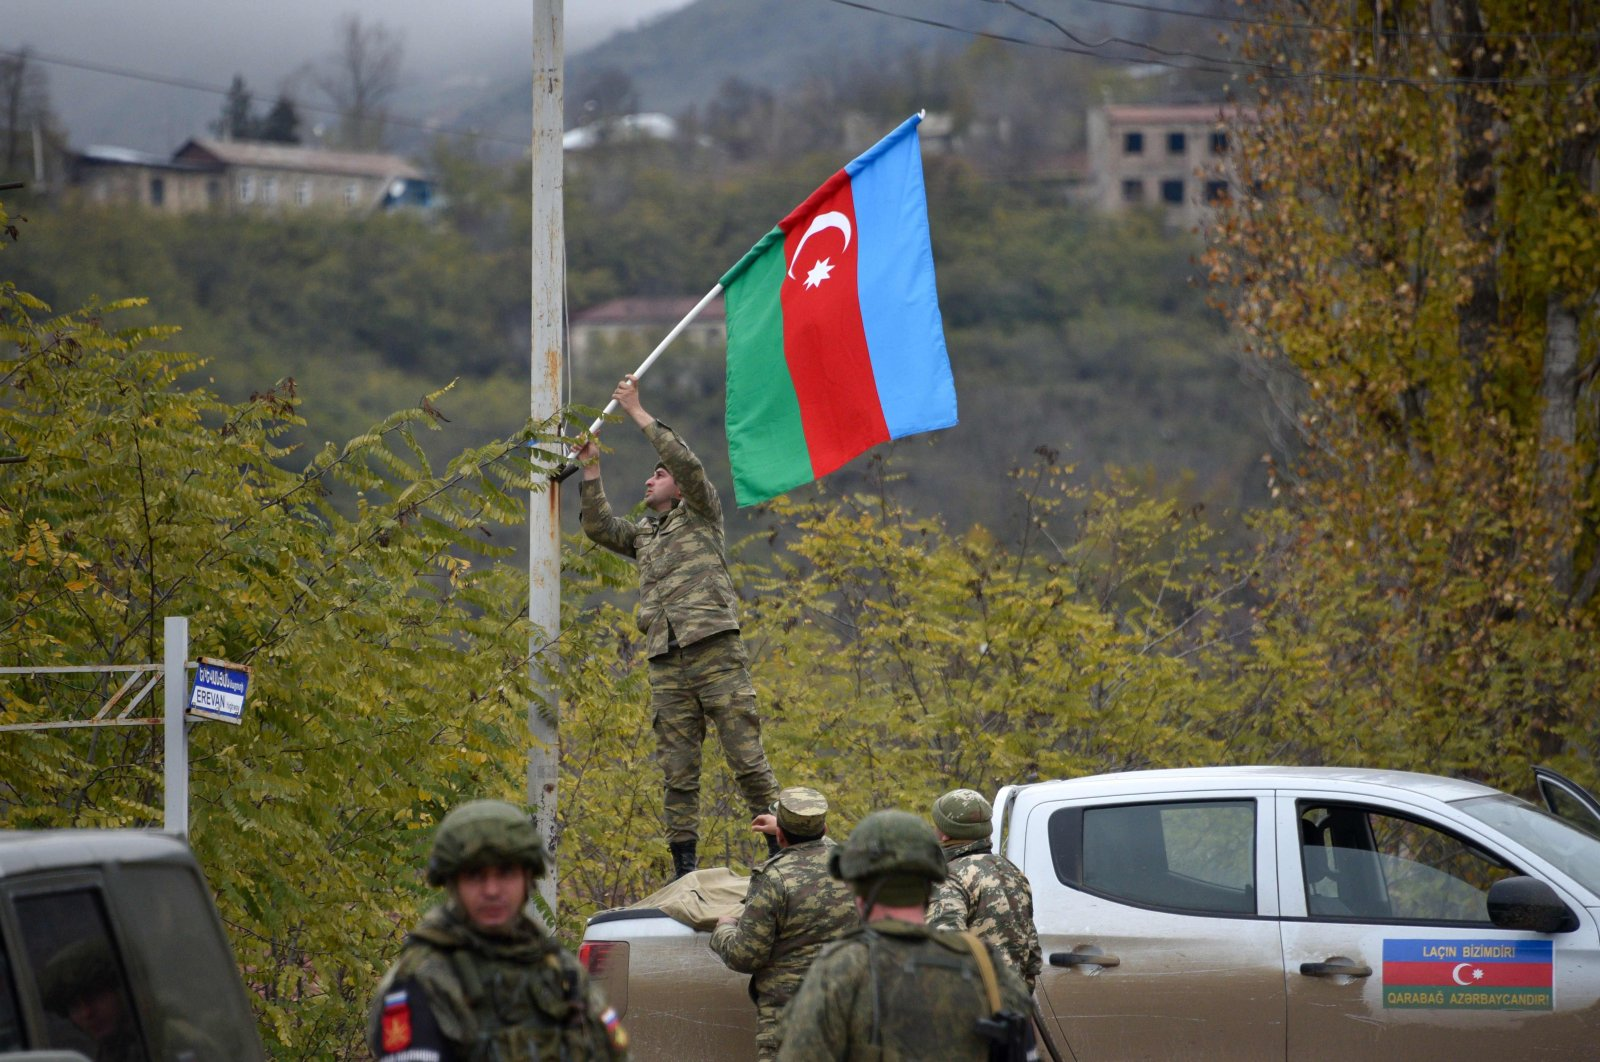 An Azerbaijani soldier fixes a national flag on a lamppost in the town of Lachin, Azerbaijan, Dec. 1, 2020. (AFP Photo)